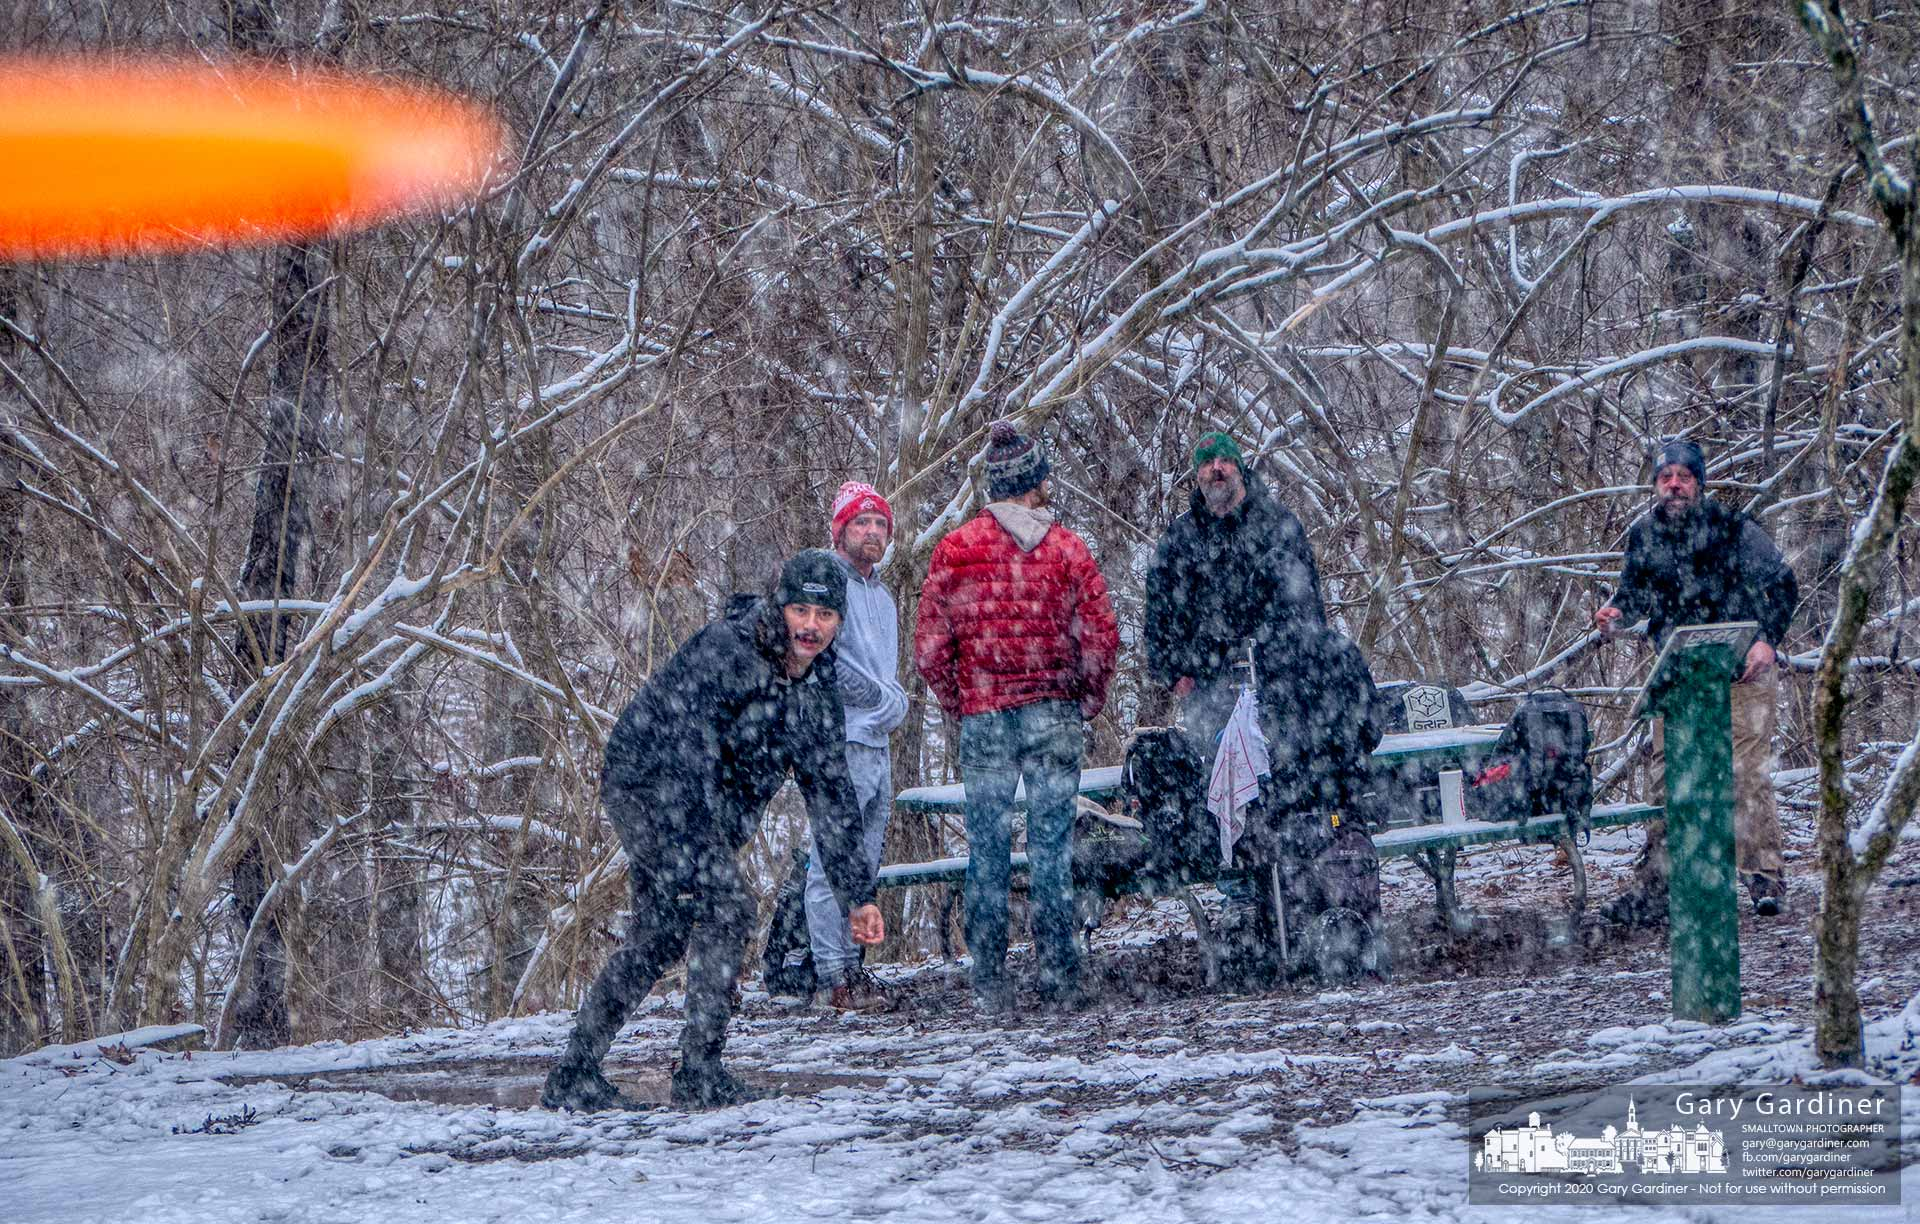 A group of disc golfers watch with surprise as one of their discs flies into the face of a photographer standing beside a tree on the course. My Final Photographer for Feb. 9, 2020.